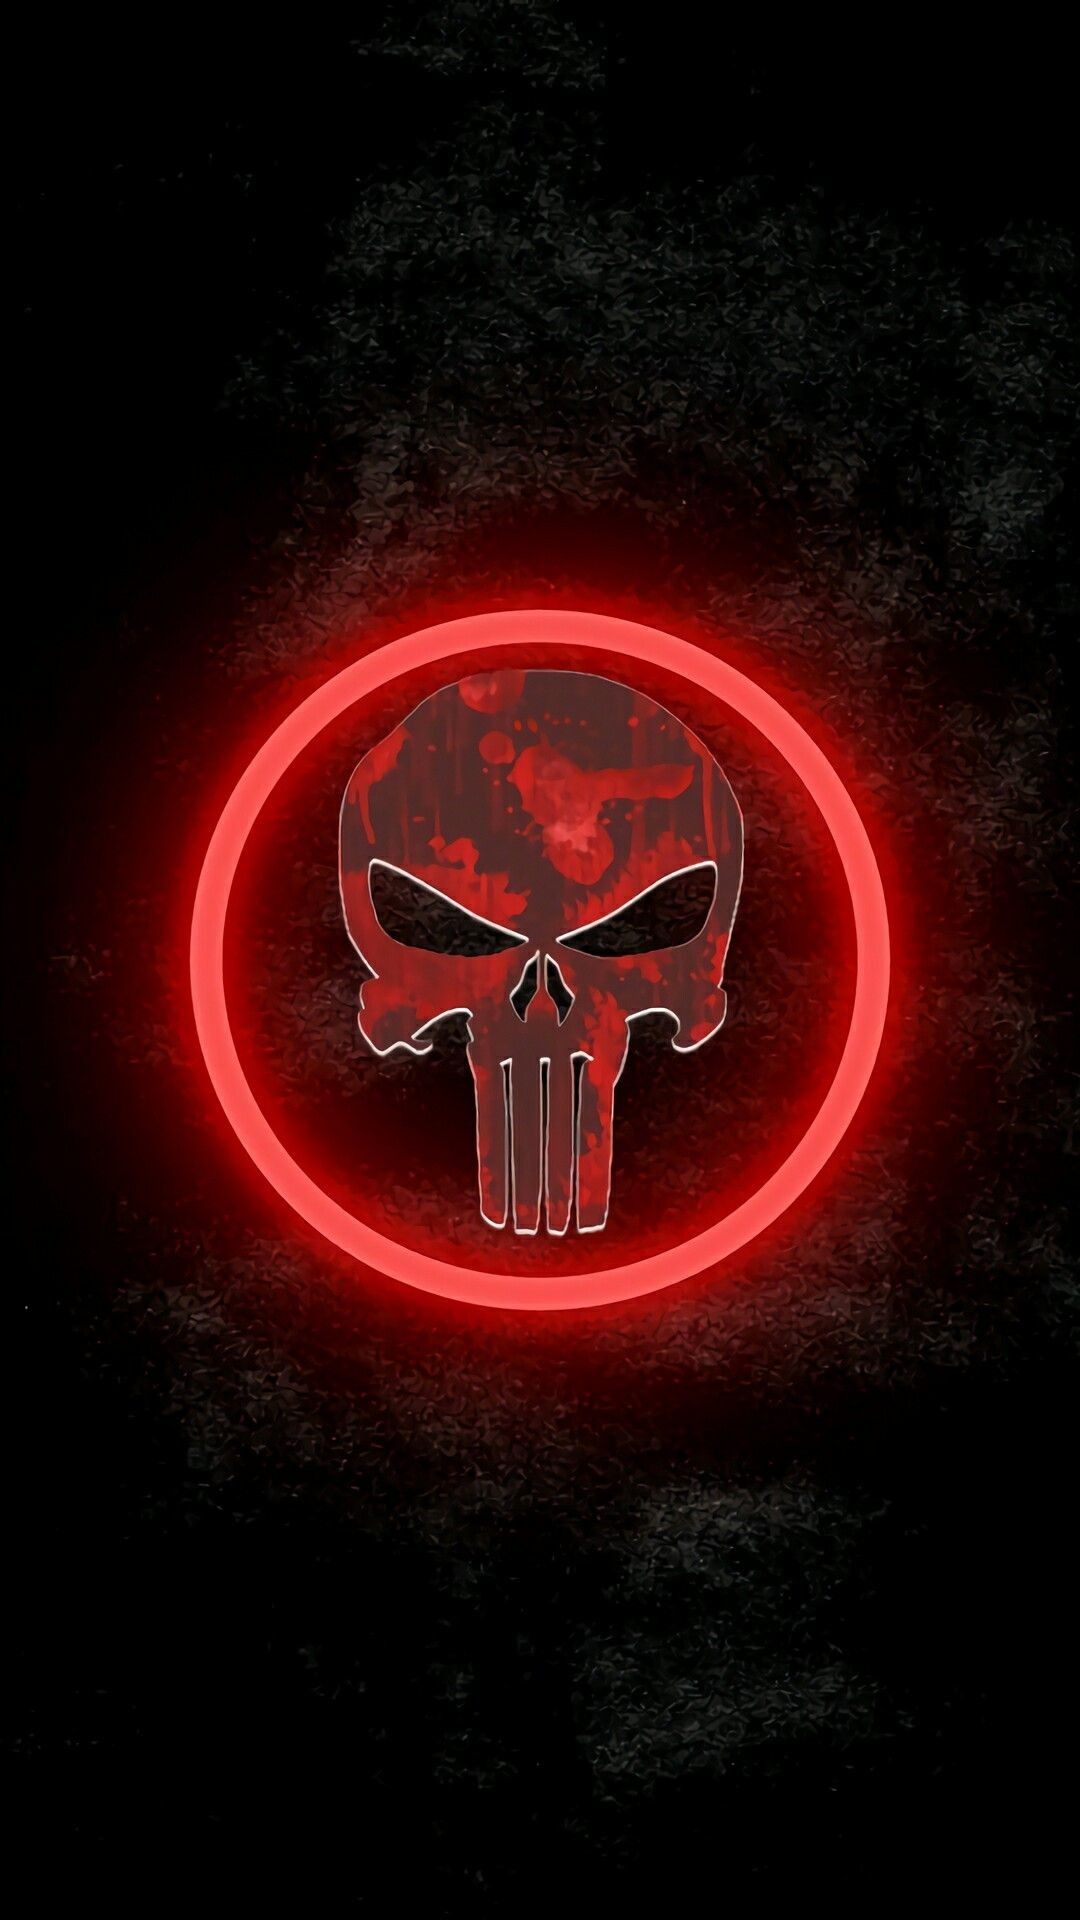 Res: 1080x1920, Punisher- Wallpaper